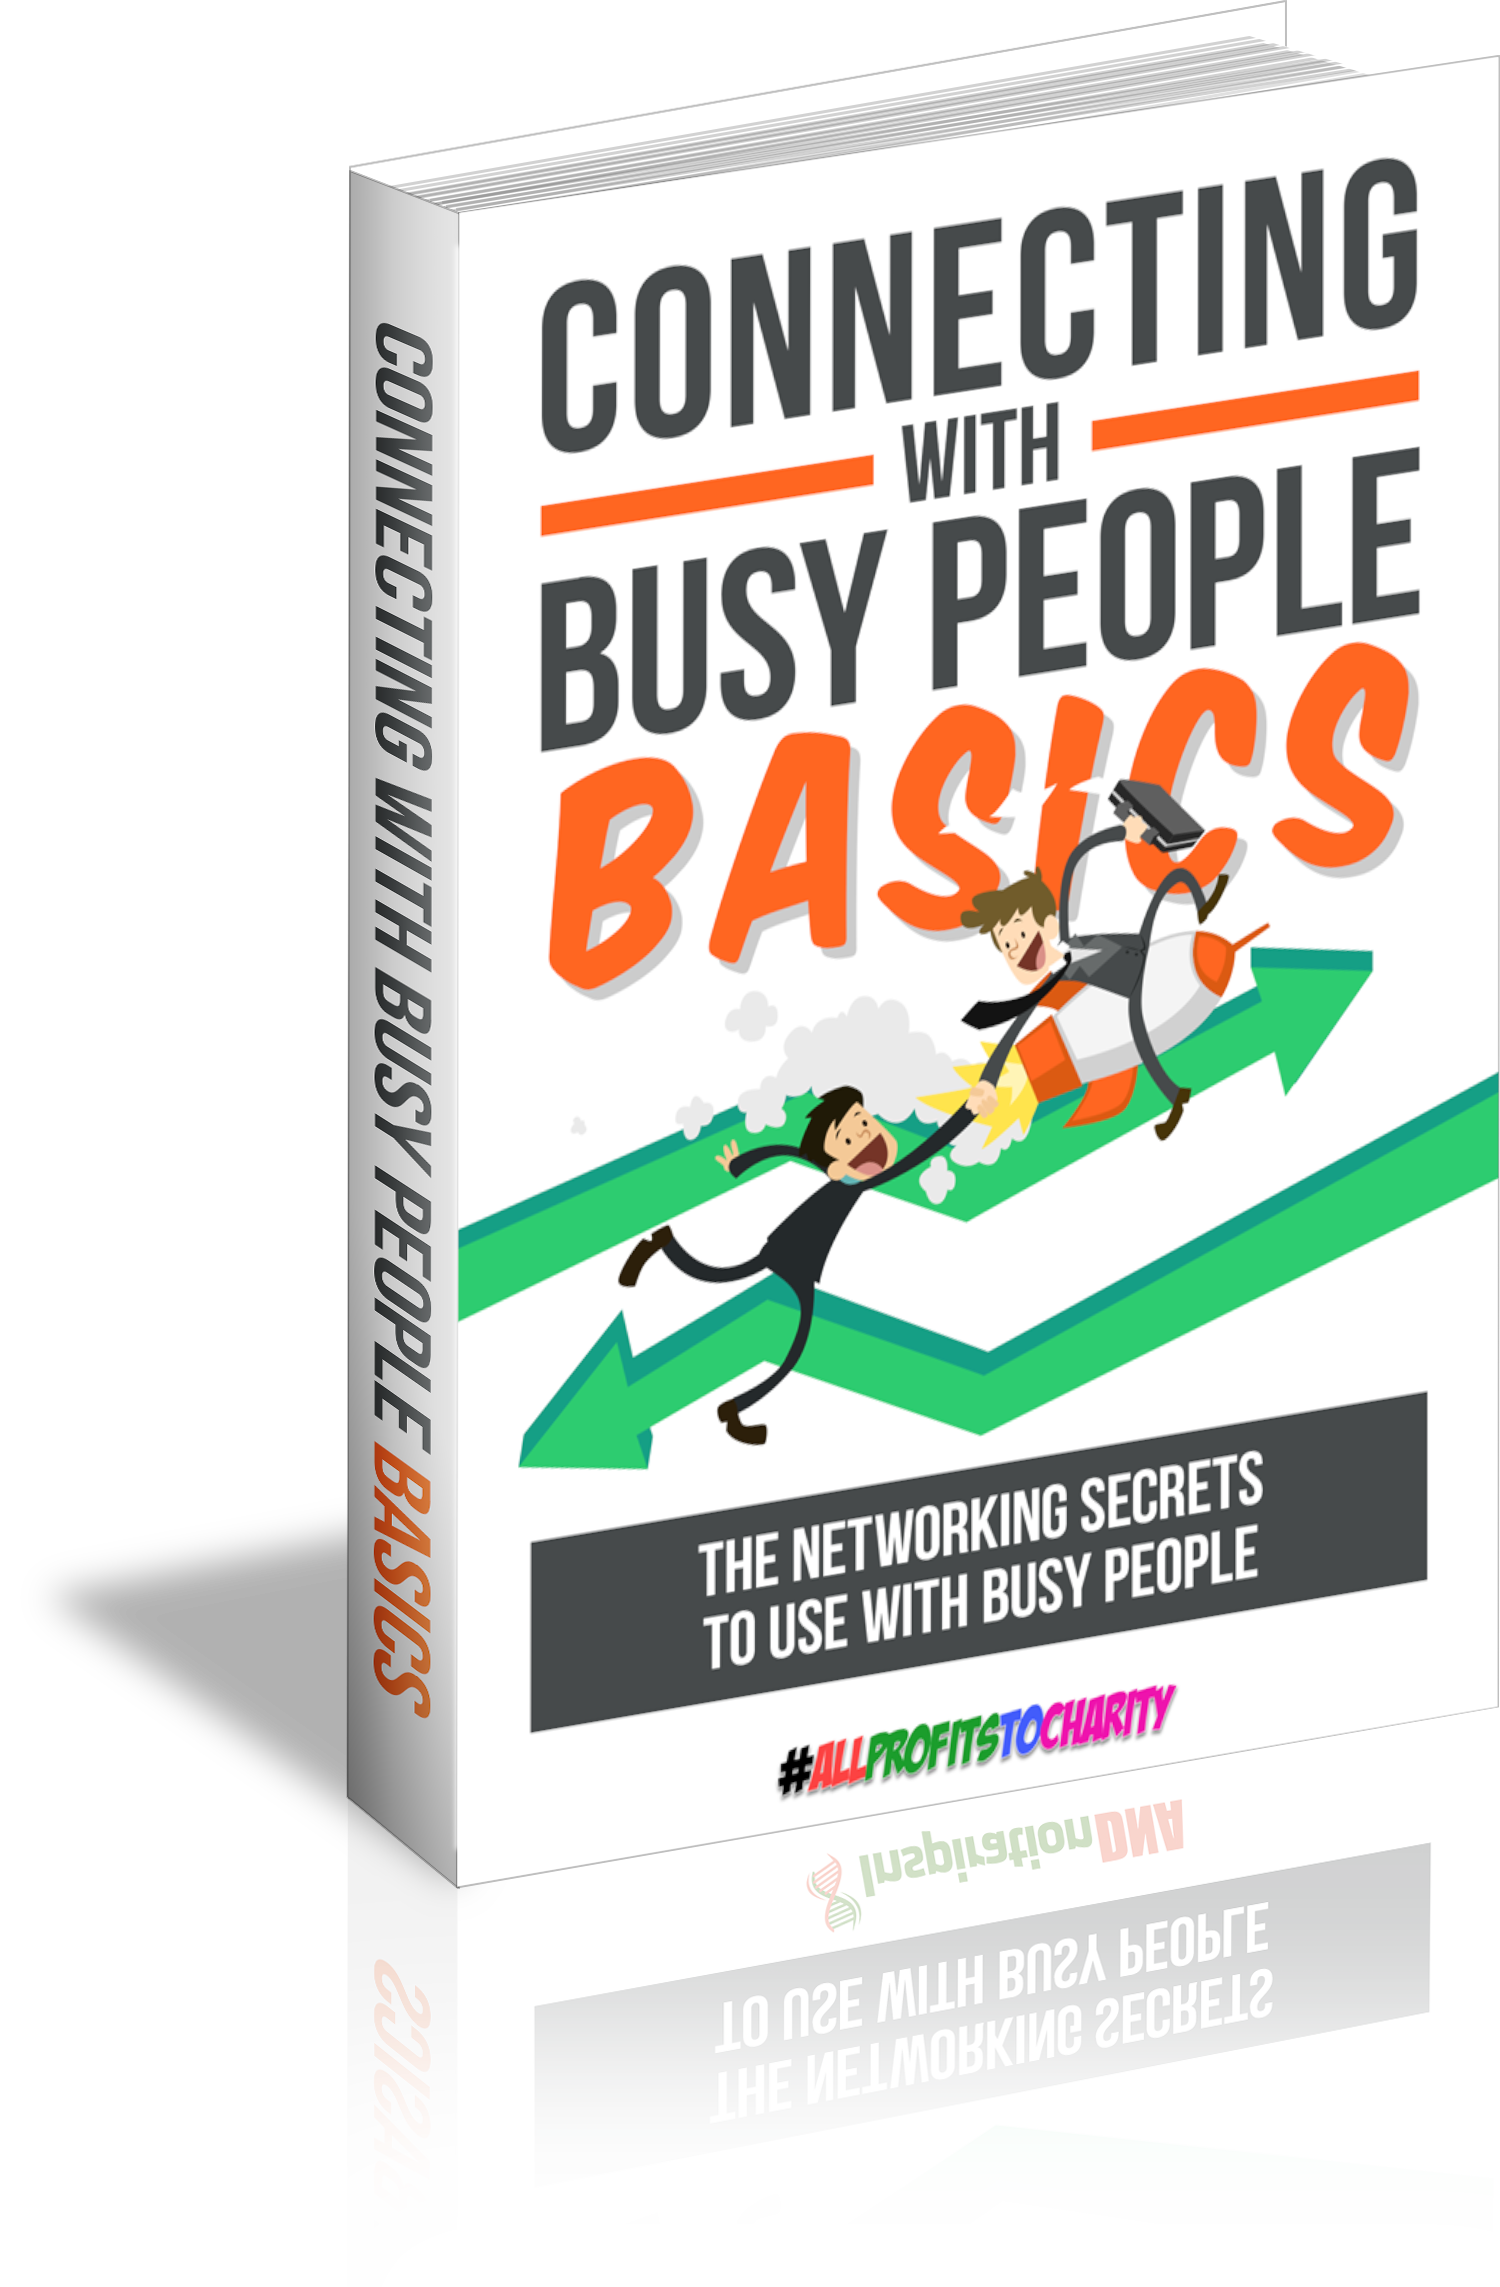 Connecting With Busy People Basics cover